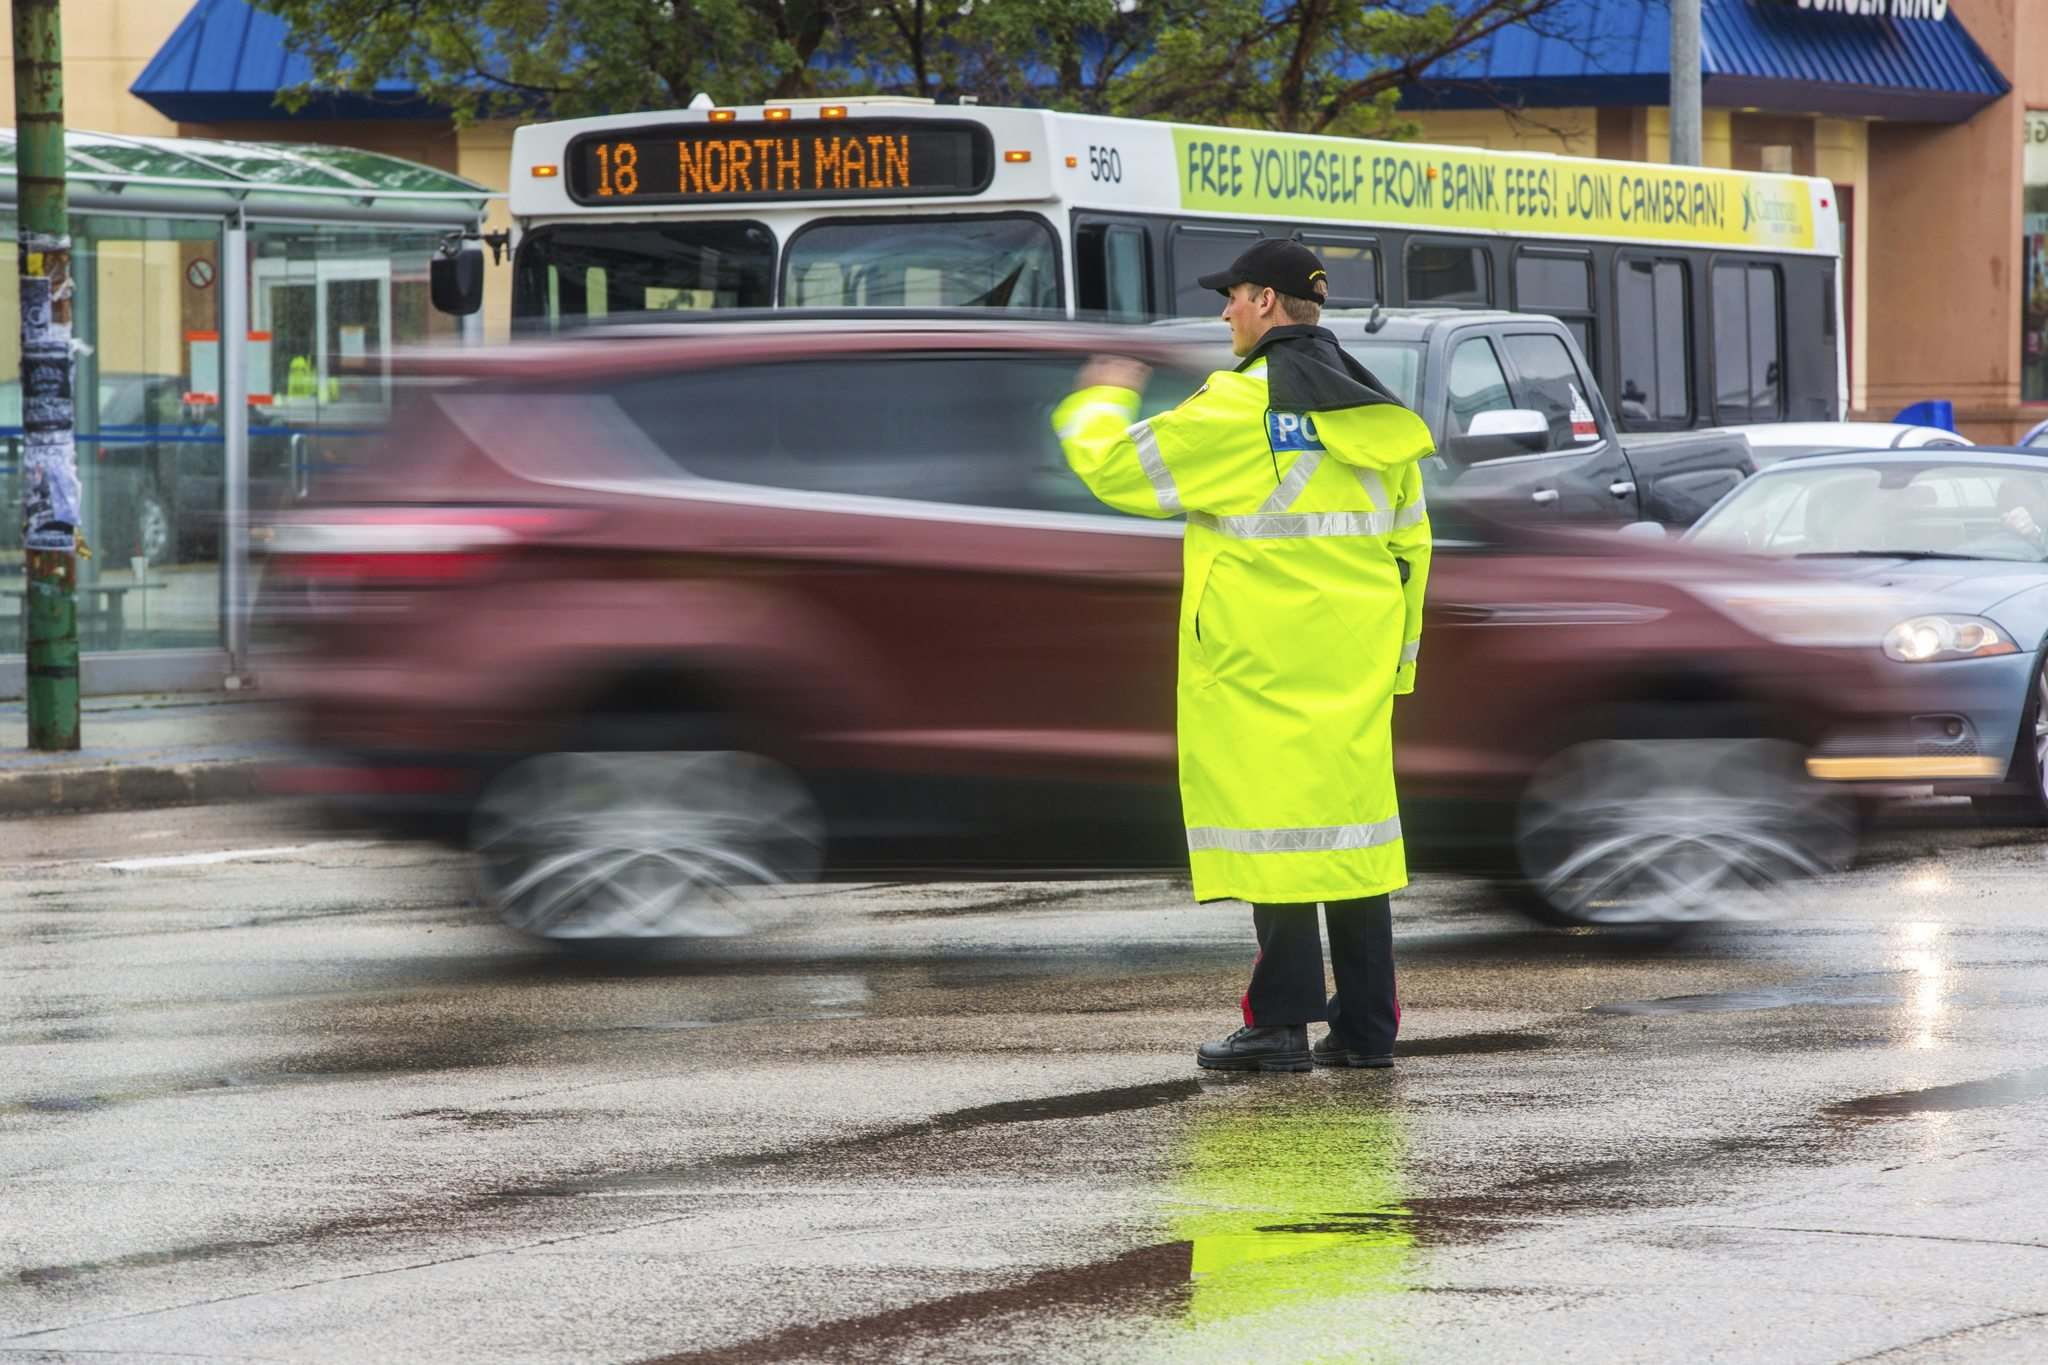 MIKAELA MACKENZIE / WINNIPEG FREE PRESS</p><p>Cadets and police direct Wednesday morning traffic at Confusion Corner, where the lights have been out since 7:30 p.m. on Tuesday.</p>